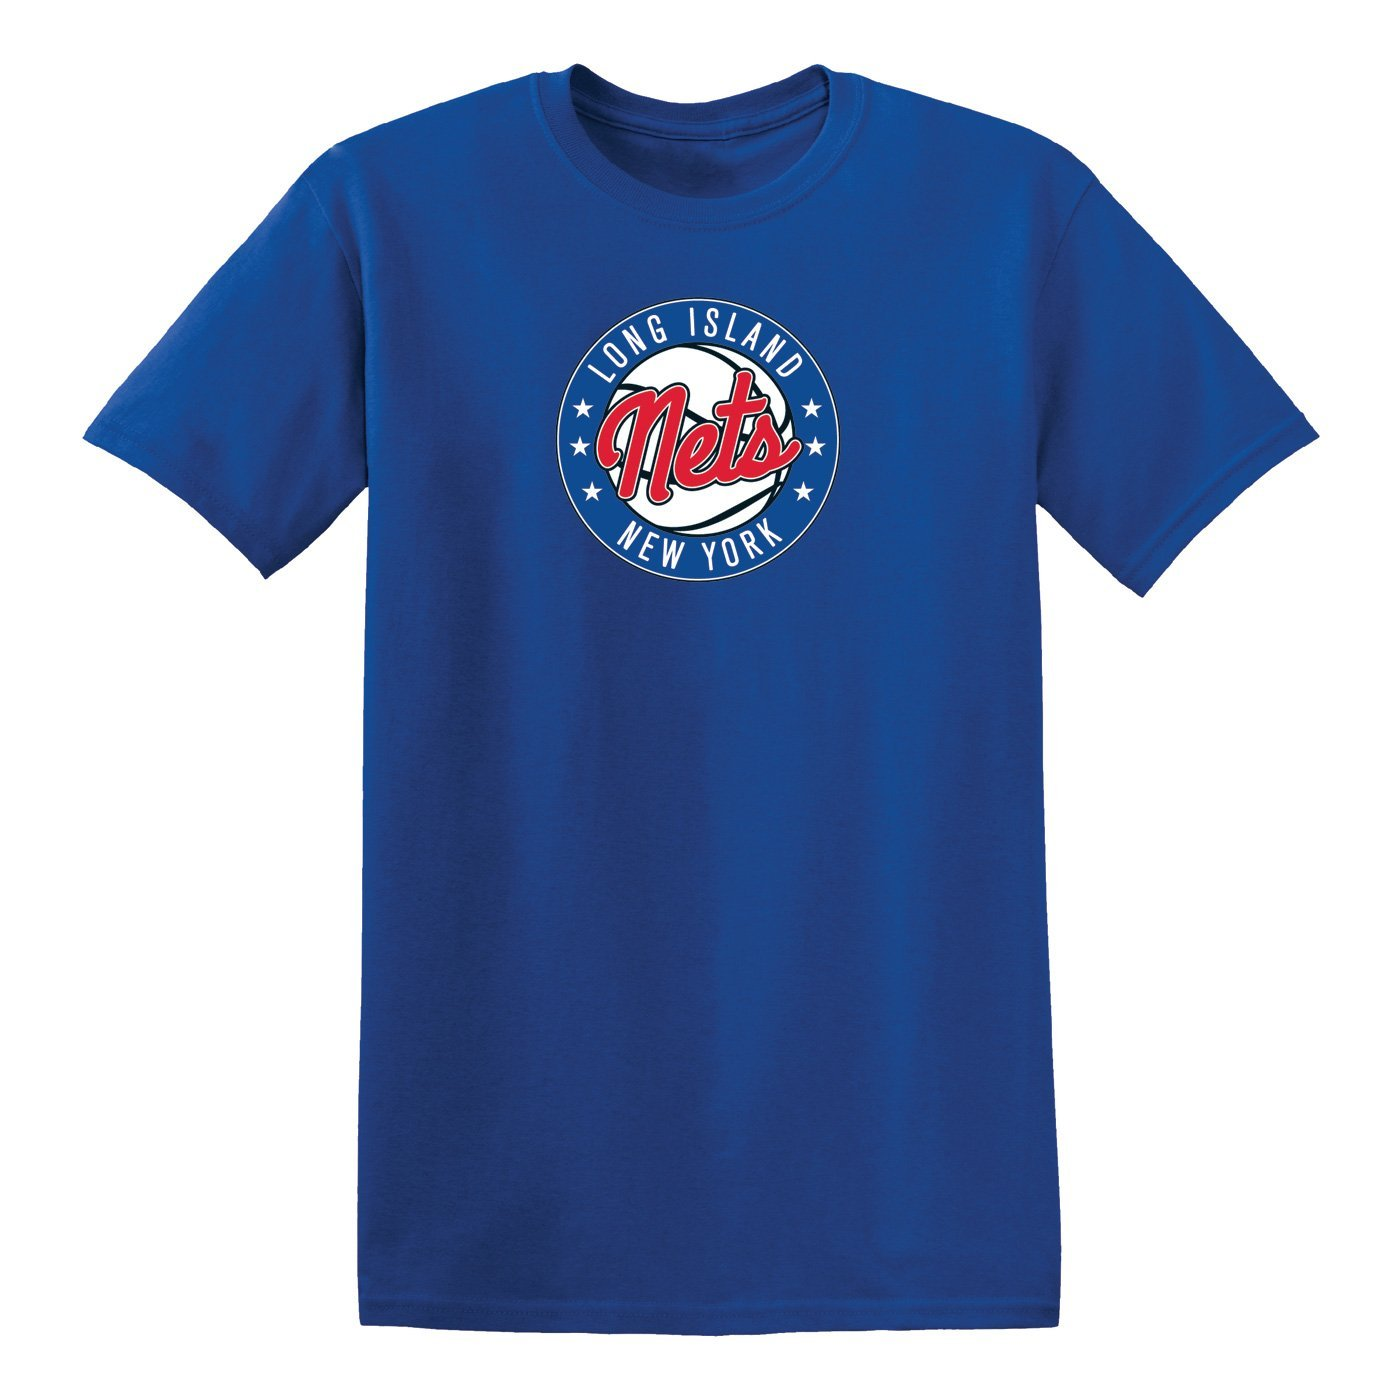 Long Island Nets Tees RYL / S Long Island Nets Men'S Primary Logo Tee - Blue